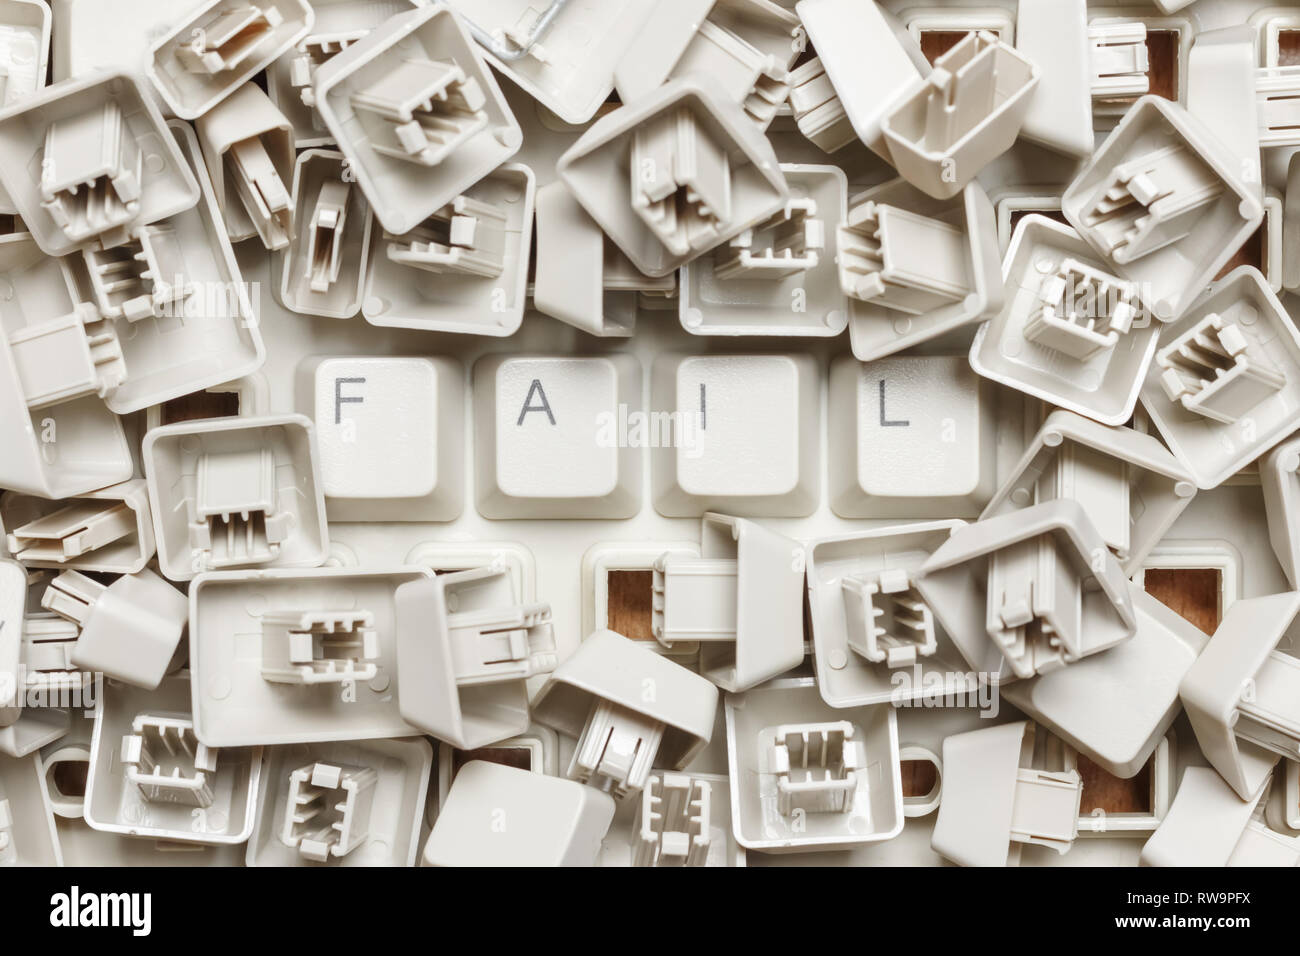 Word fail from a heap of computer keys - Stock Image